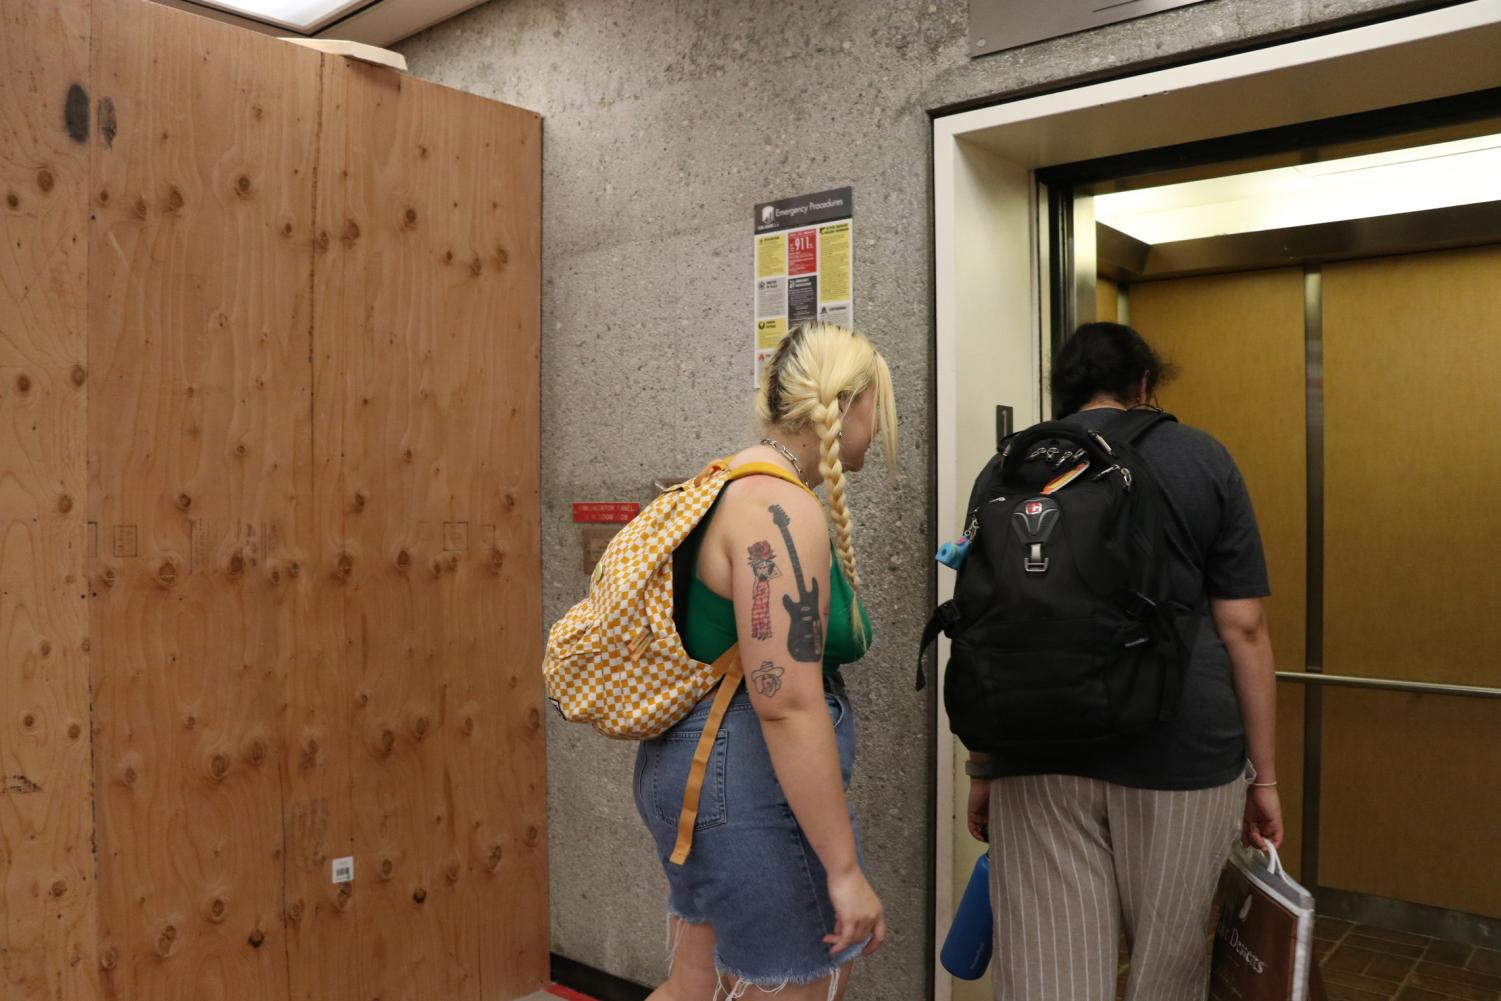 Zoe Little (left), and Abhiravi Charathram (right), board the second elevator in the North library due to ongoing maintenance of the other library elevator.